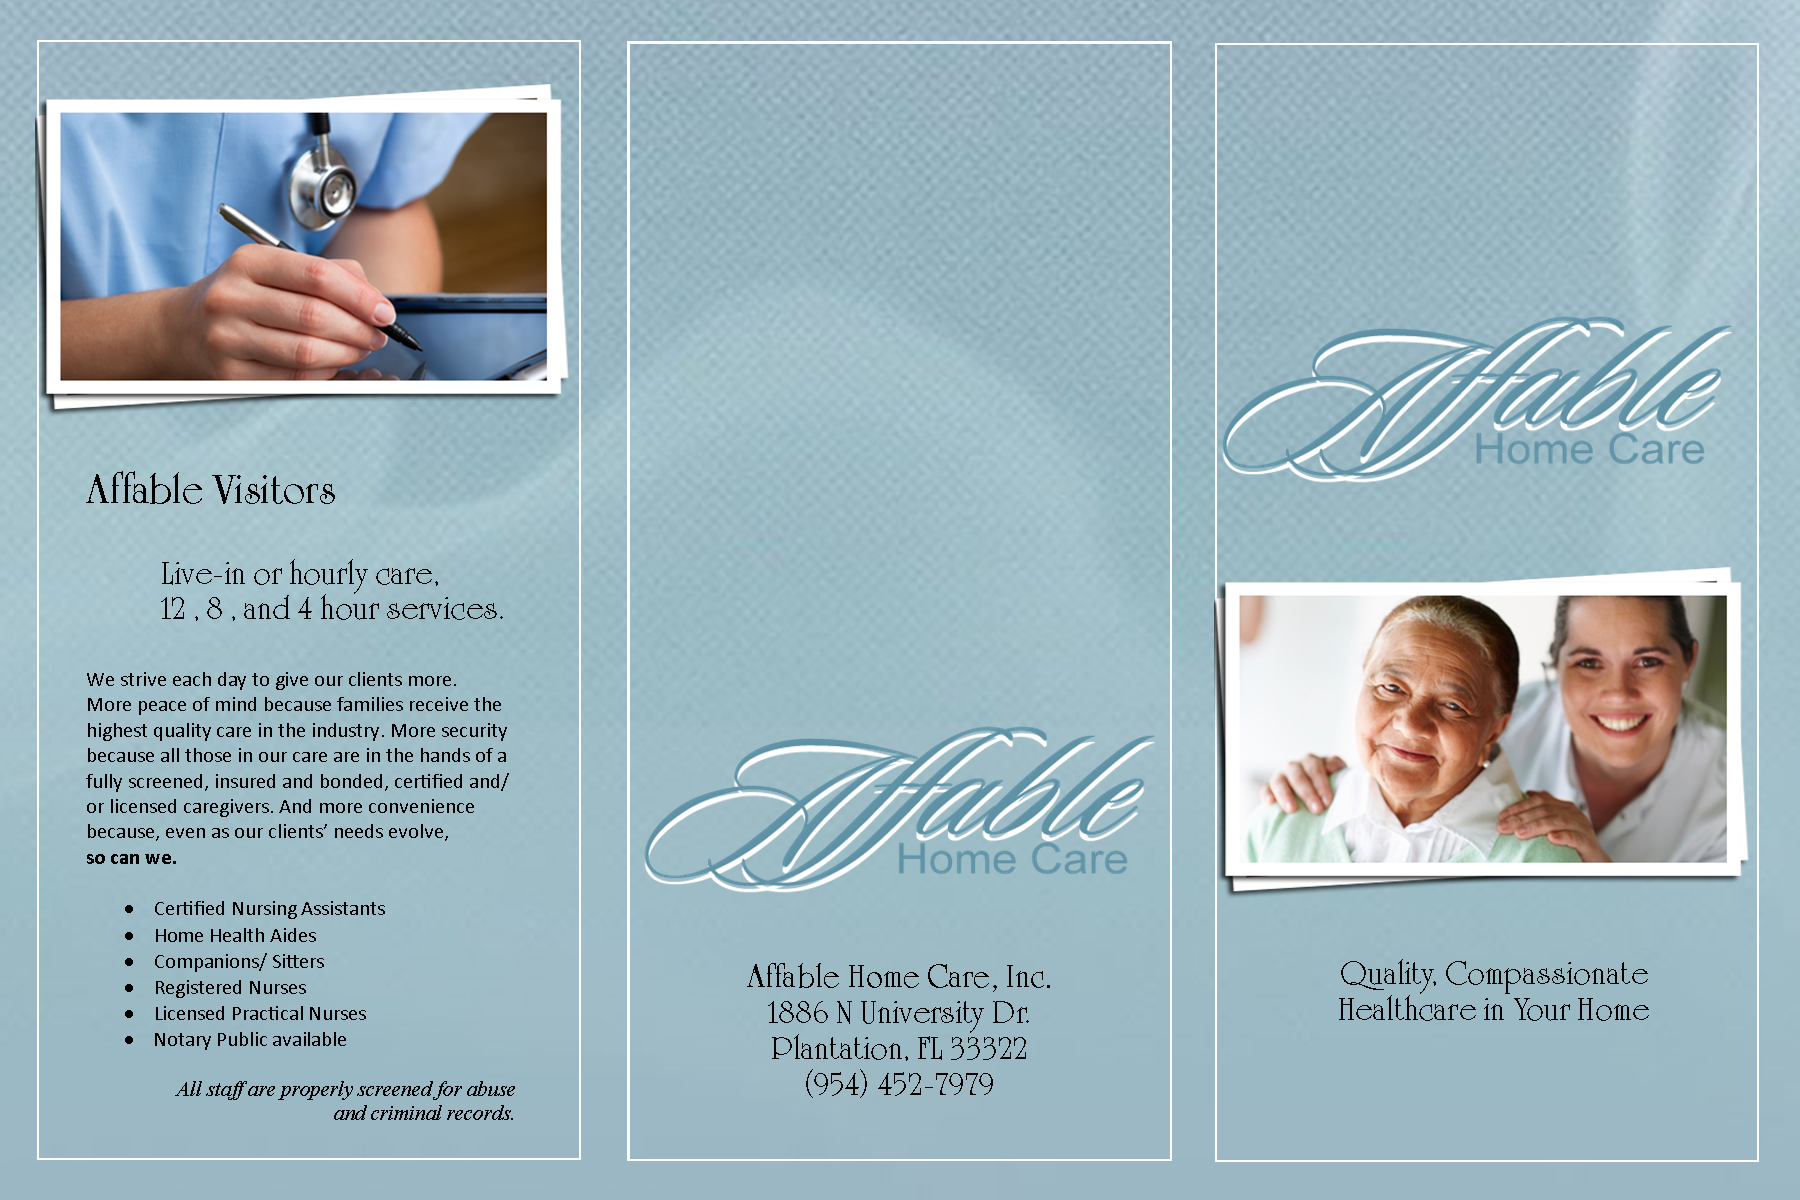 Affable home care brochure front creative pinterest